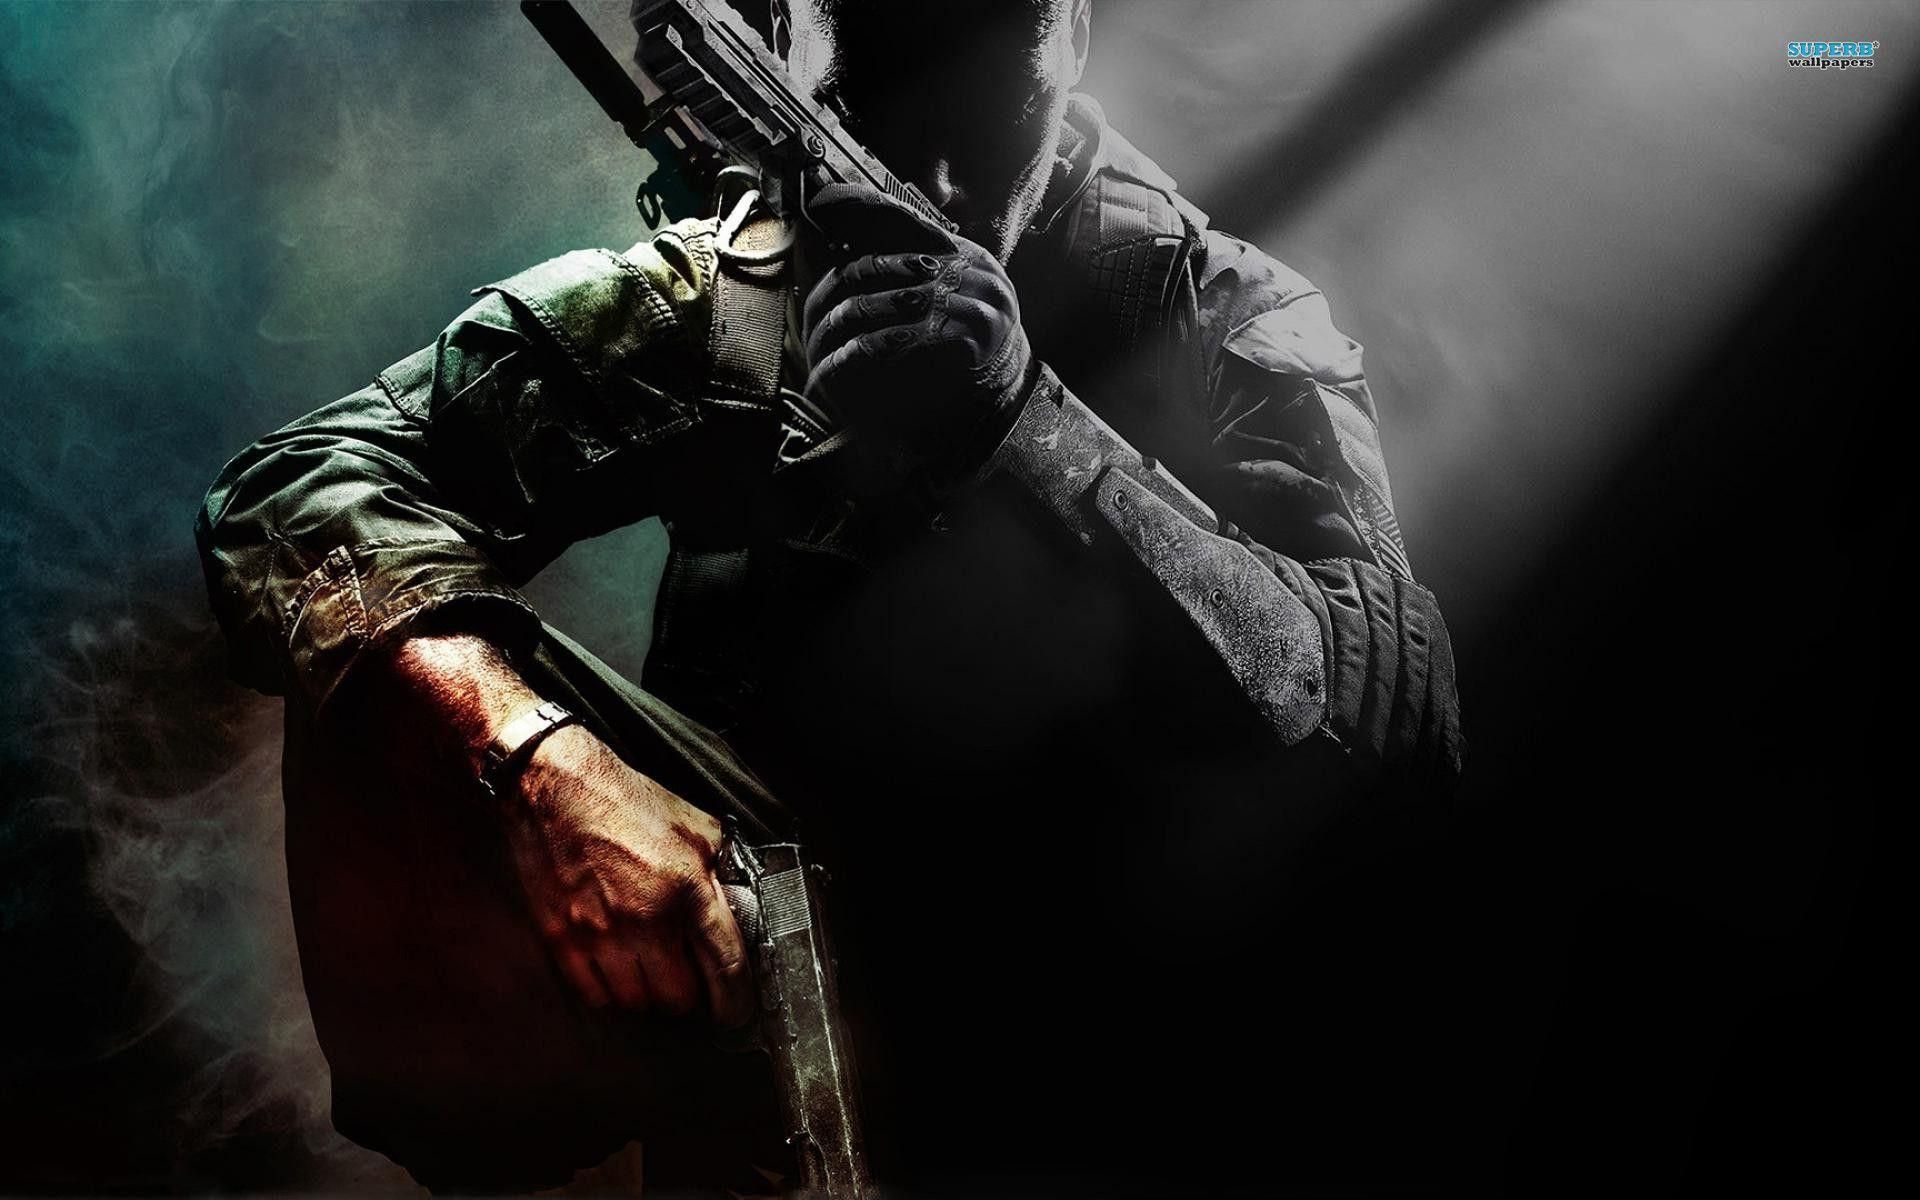 Pin On Call Of Duty Black Ops 4 Hd Games 4k Wallpapers